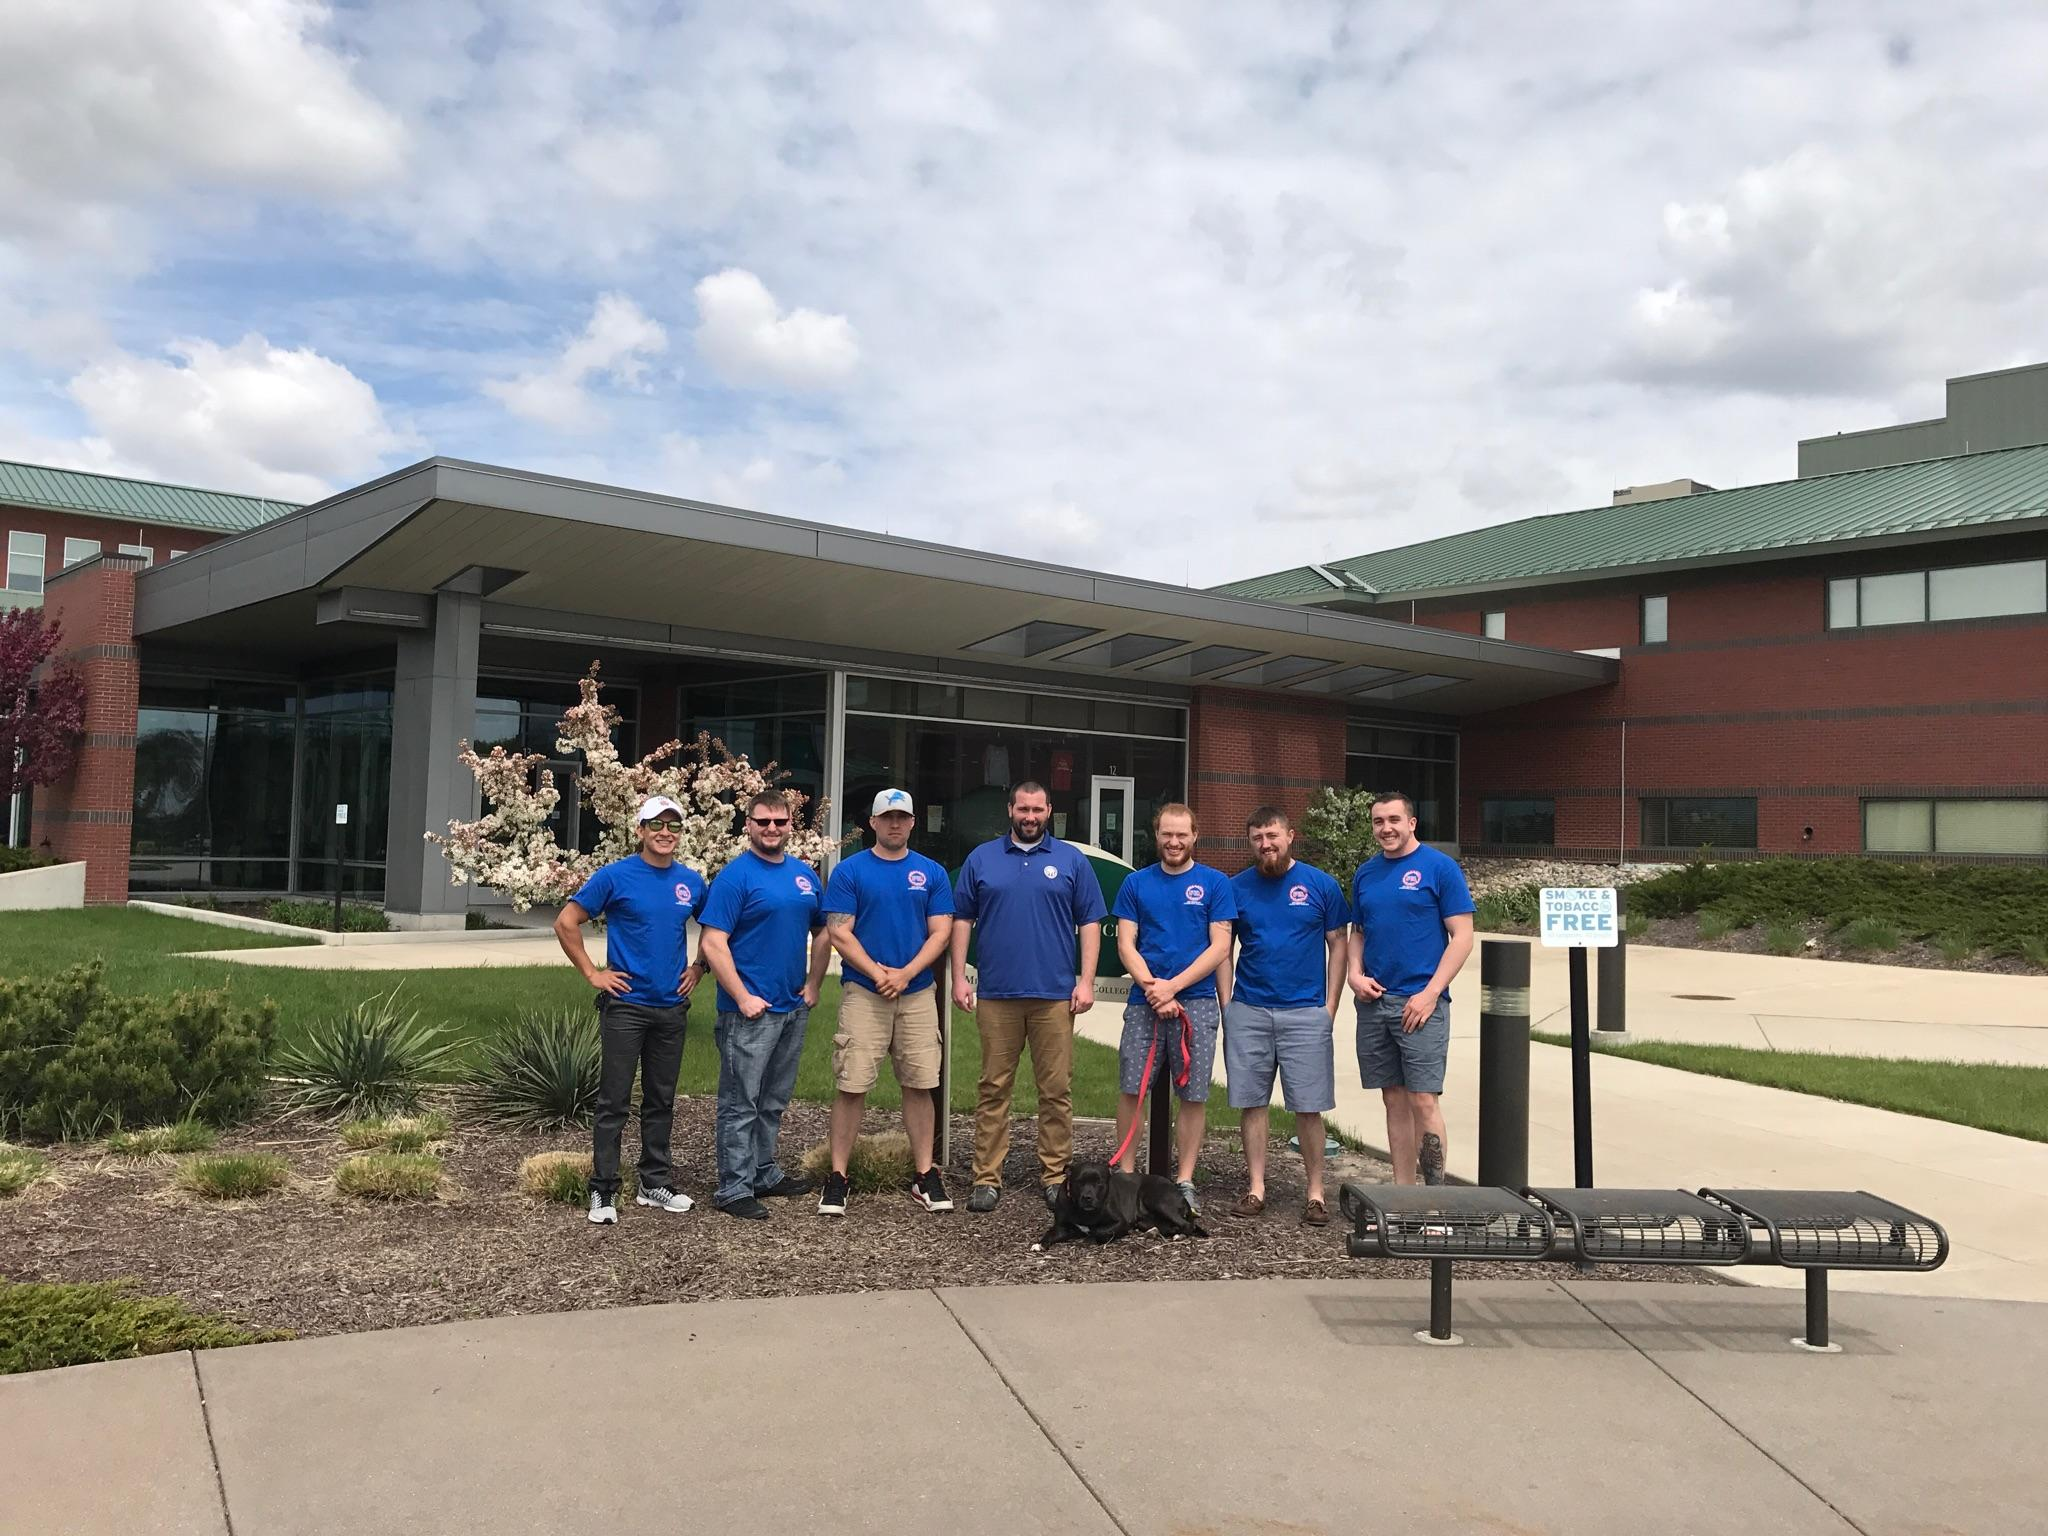 Seven members of the Student Veterans of America gather out front of the Mount Pleasant campus of Mid Michigan Community college with a large black dog on a leash. The members are all wearing their matching t-shirts.